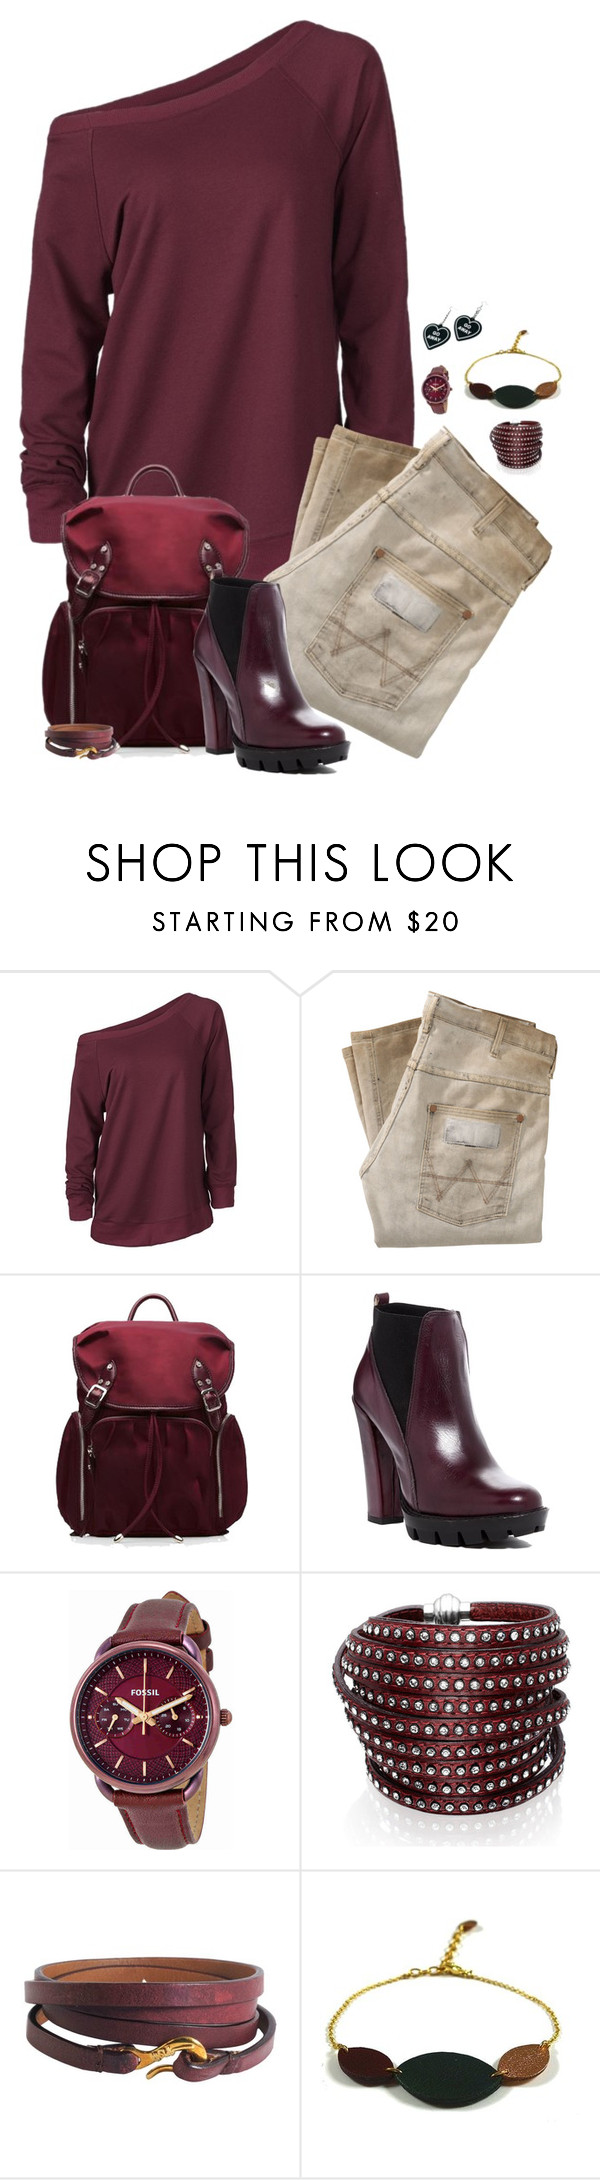 """Untitled #1859"" by patsypatsy ❤ liked on Polyvore featuring Wrangler, M Z Wallace, Charles David, FOSSIL, Sif Jakobs Jewellery, Ippolita, Atelier Maï Martin and Witch Worldwide"